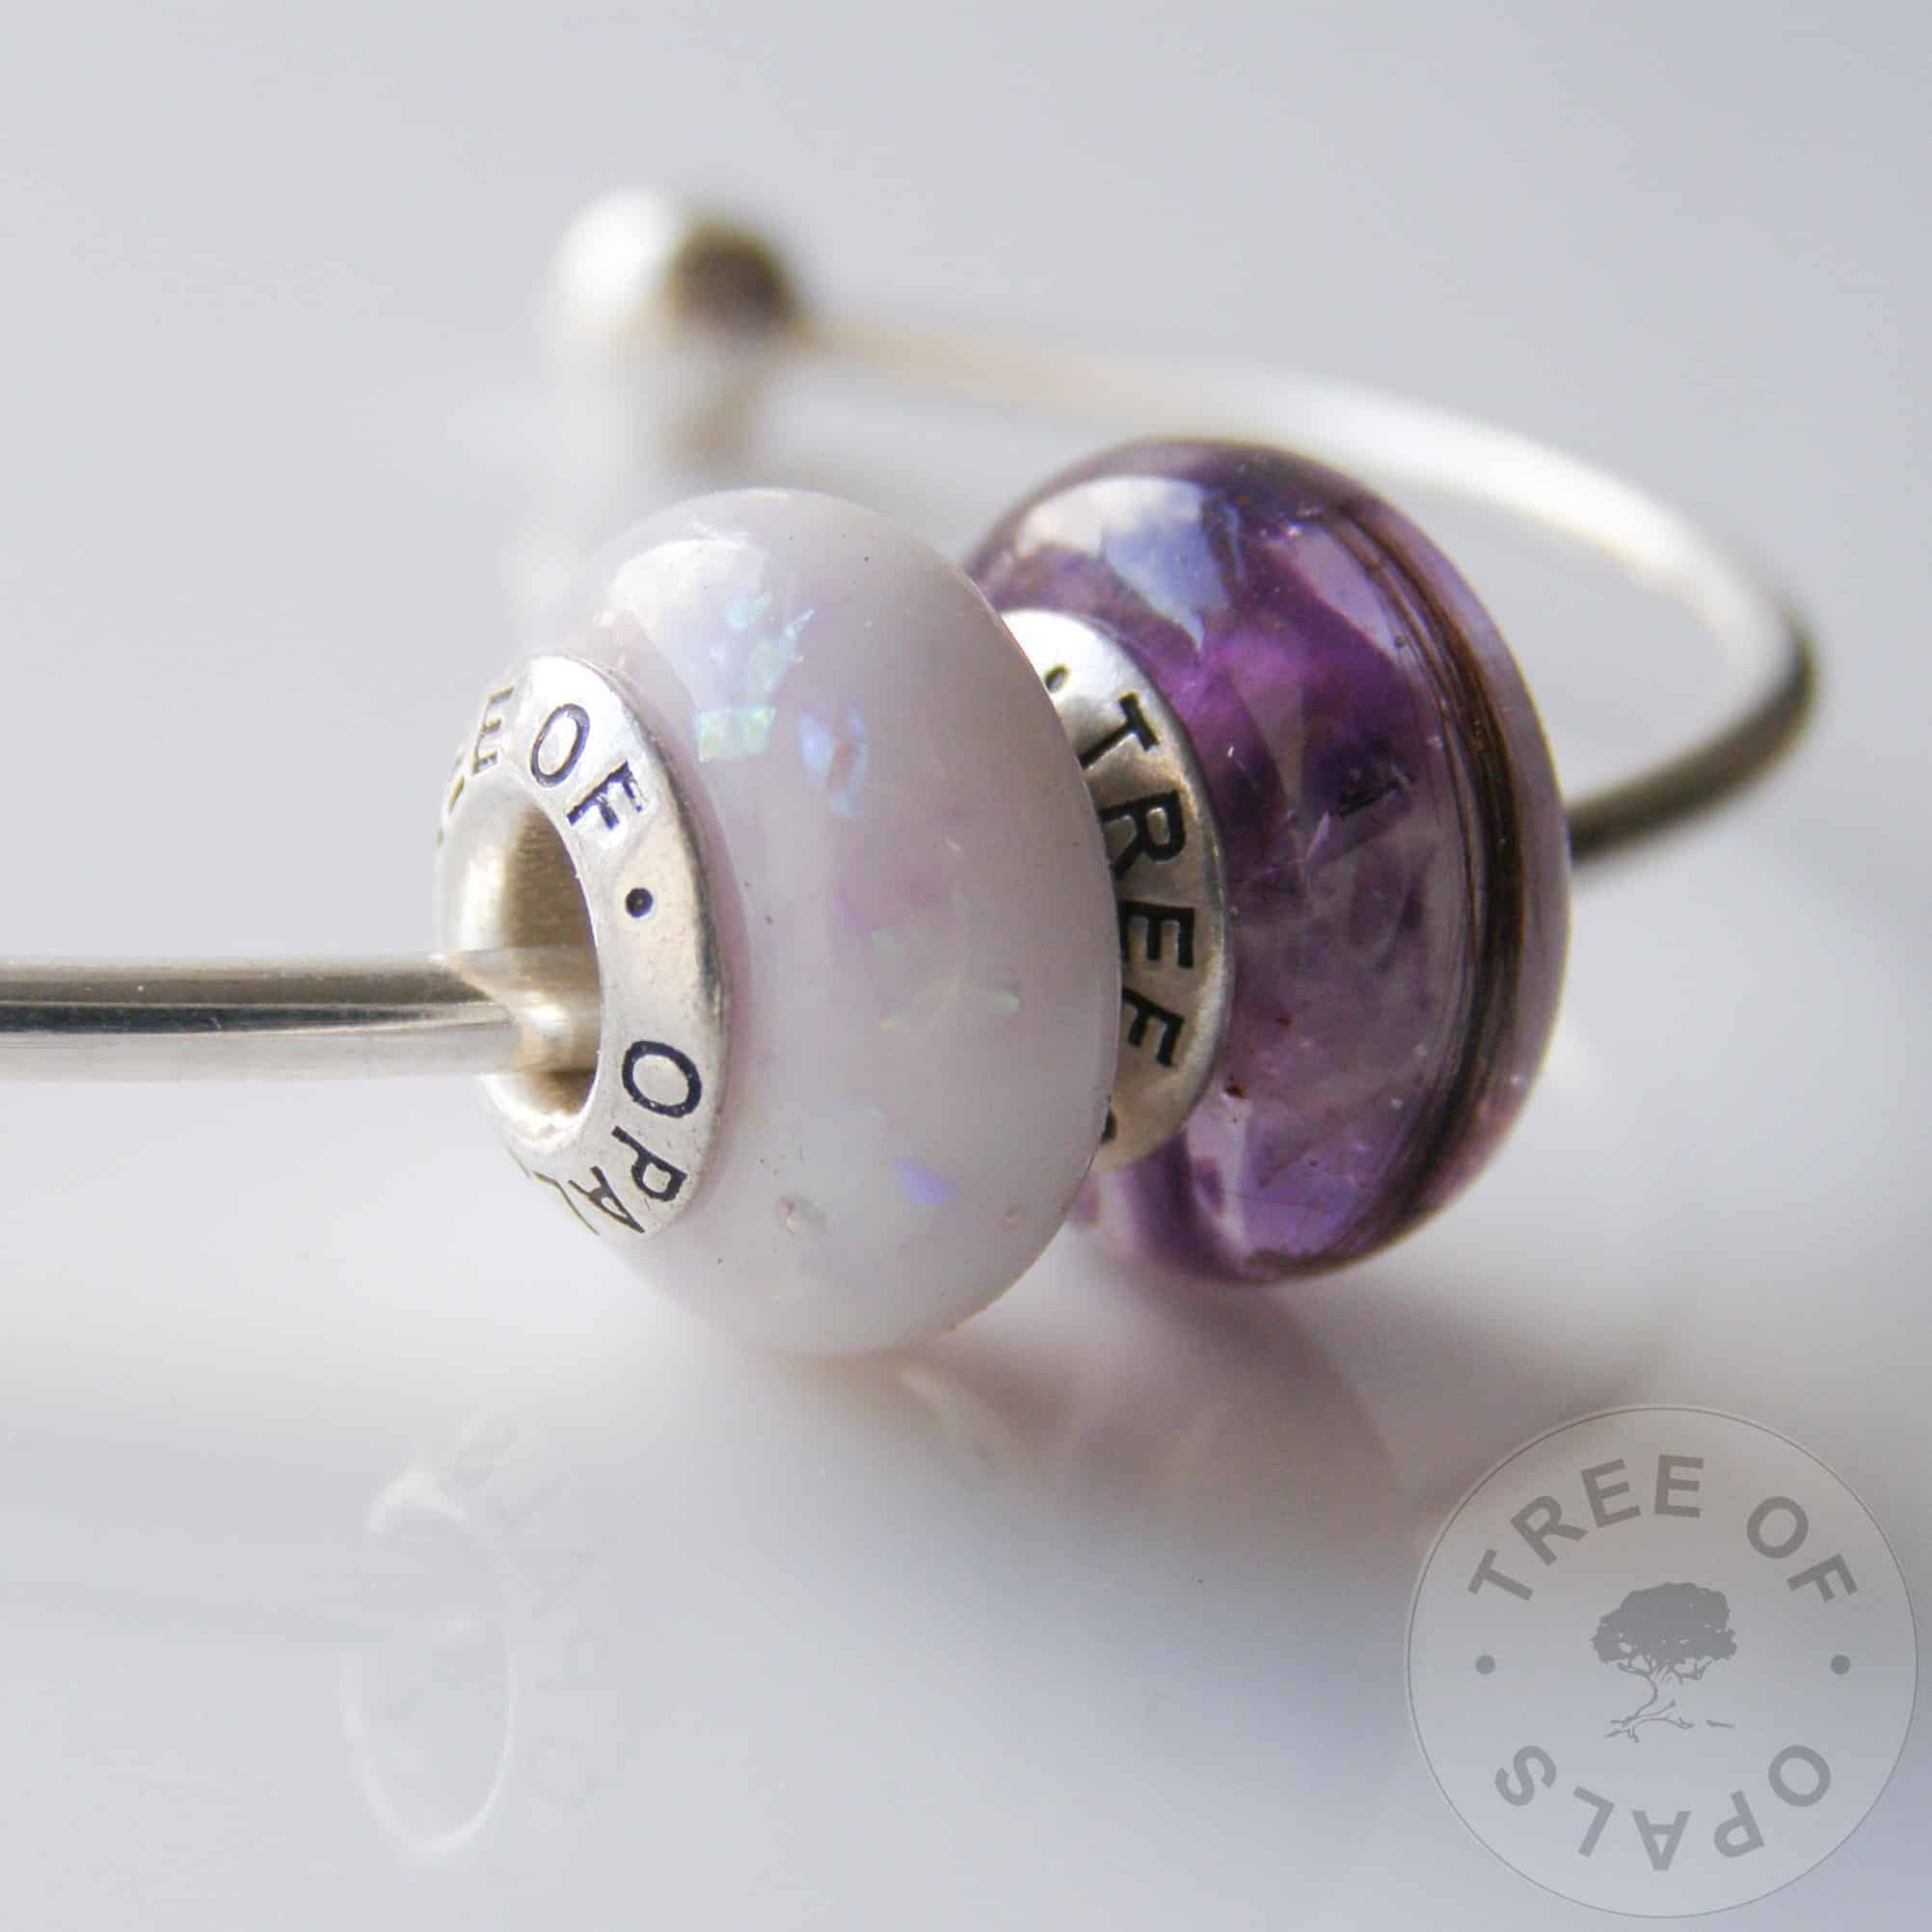 breastmilk and first curl charm bead duo - breast milk charm bead with purple opalescent flakes and lock of hair bead with genuine rough amethyst